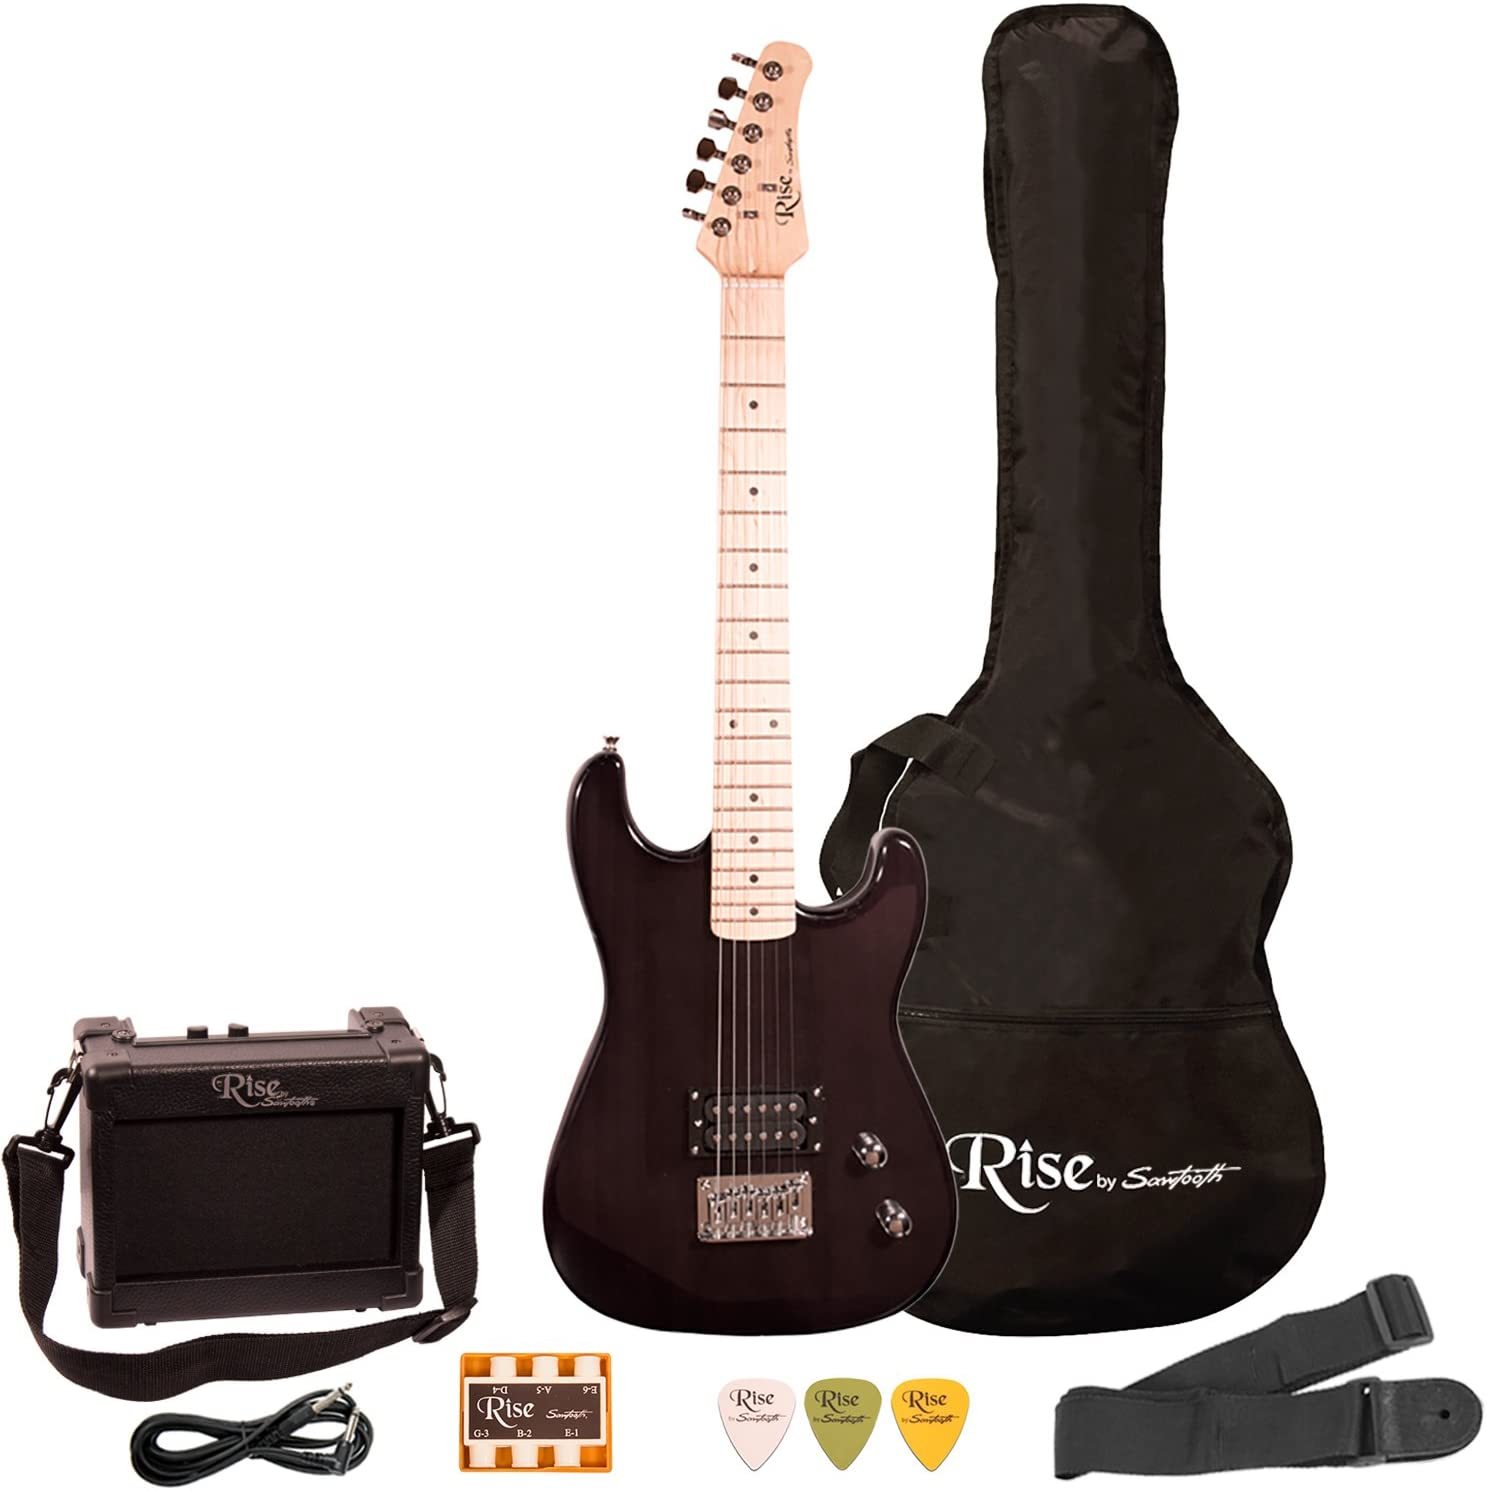 Rise by Sawtooth ST-RISE-ST-3/4-BLK-KIT-1 Electric Guitar Pack